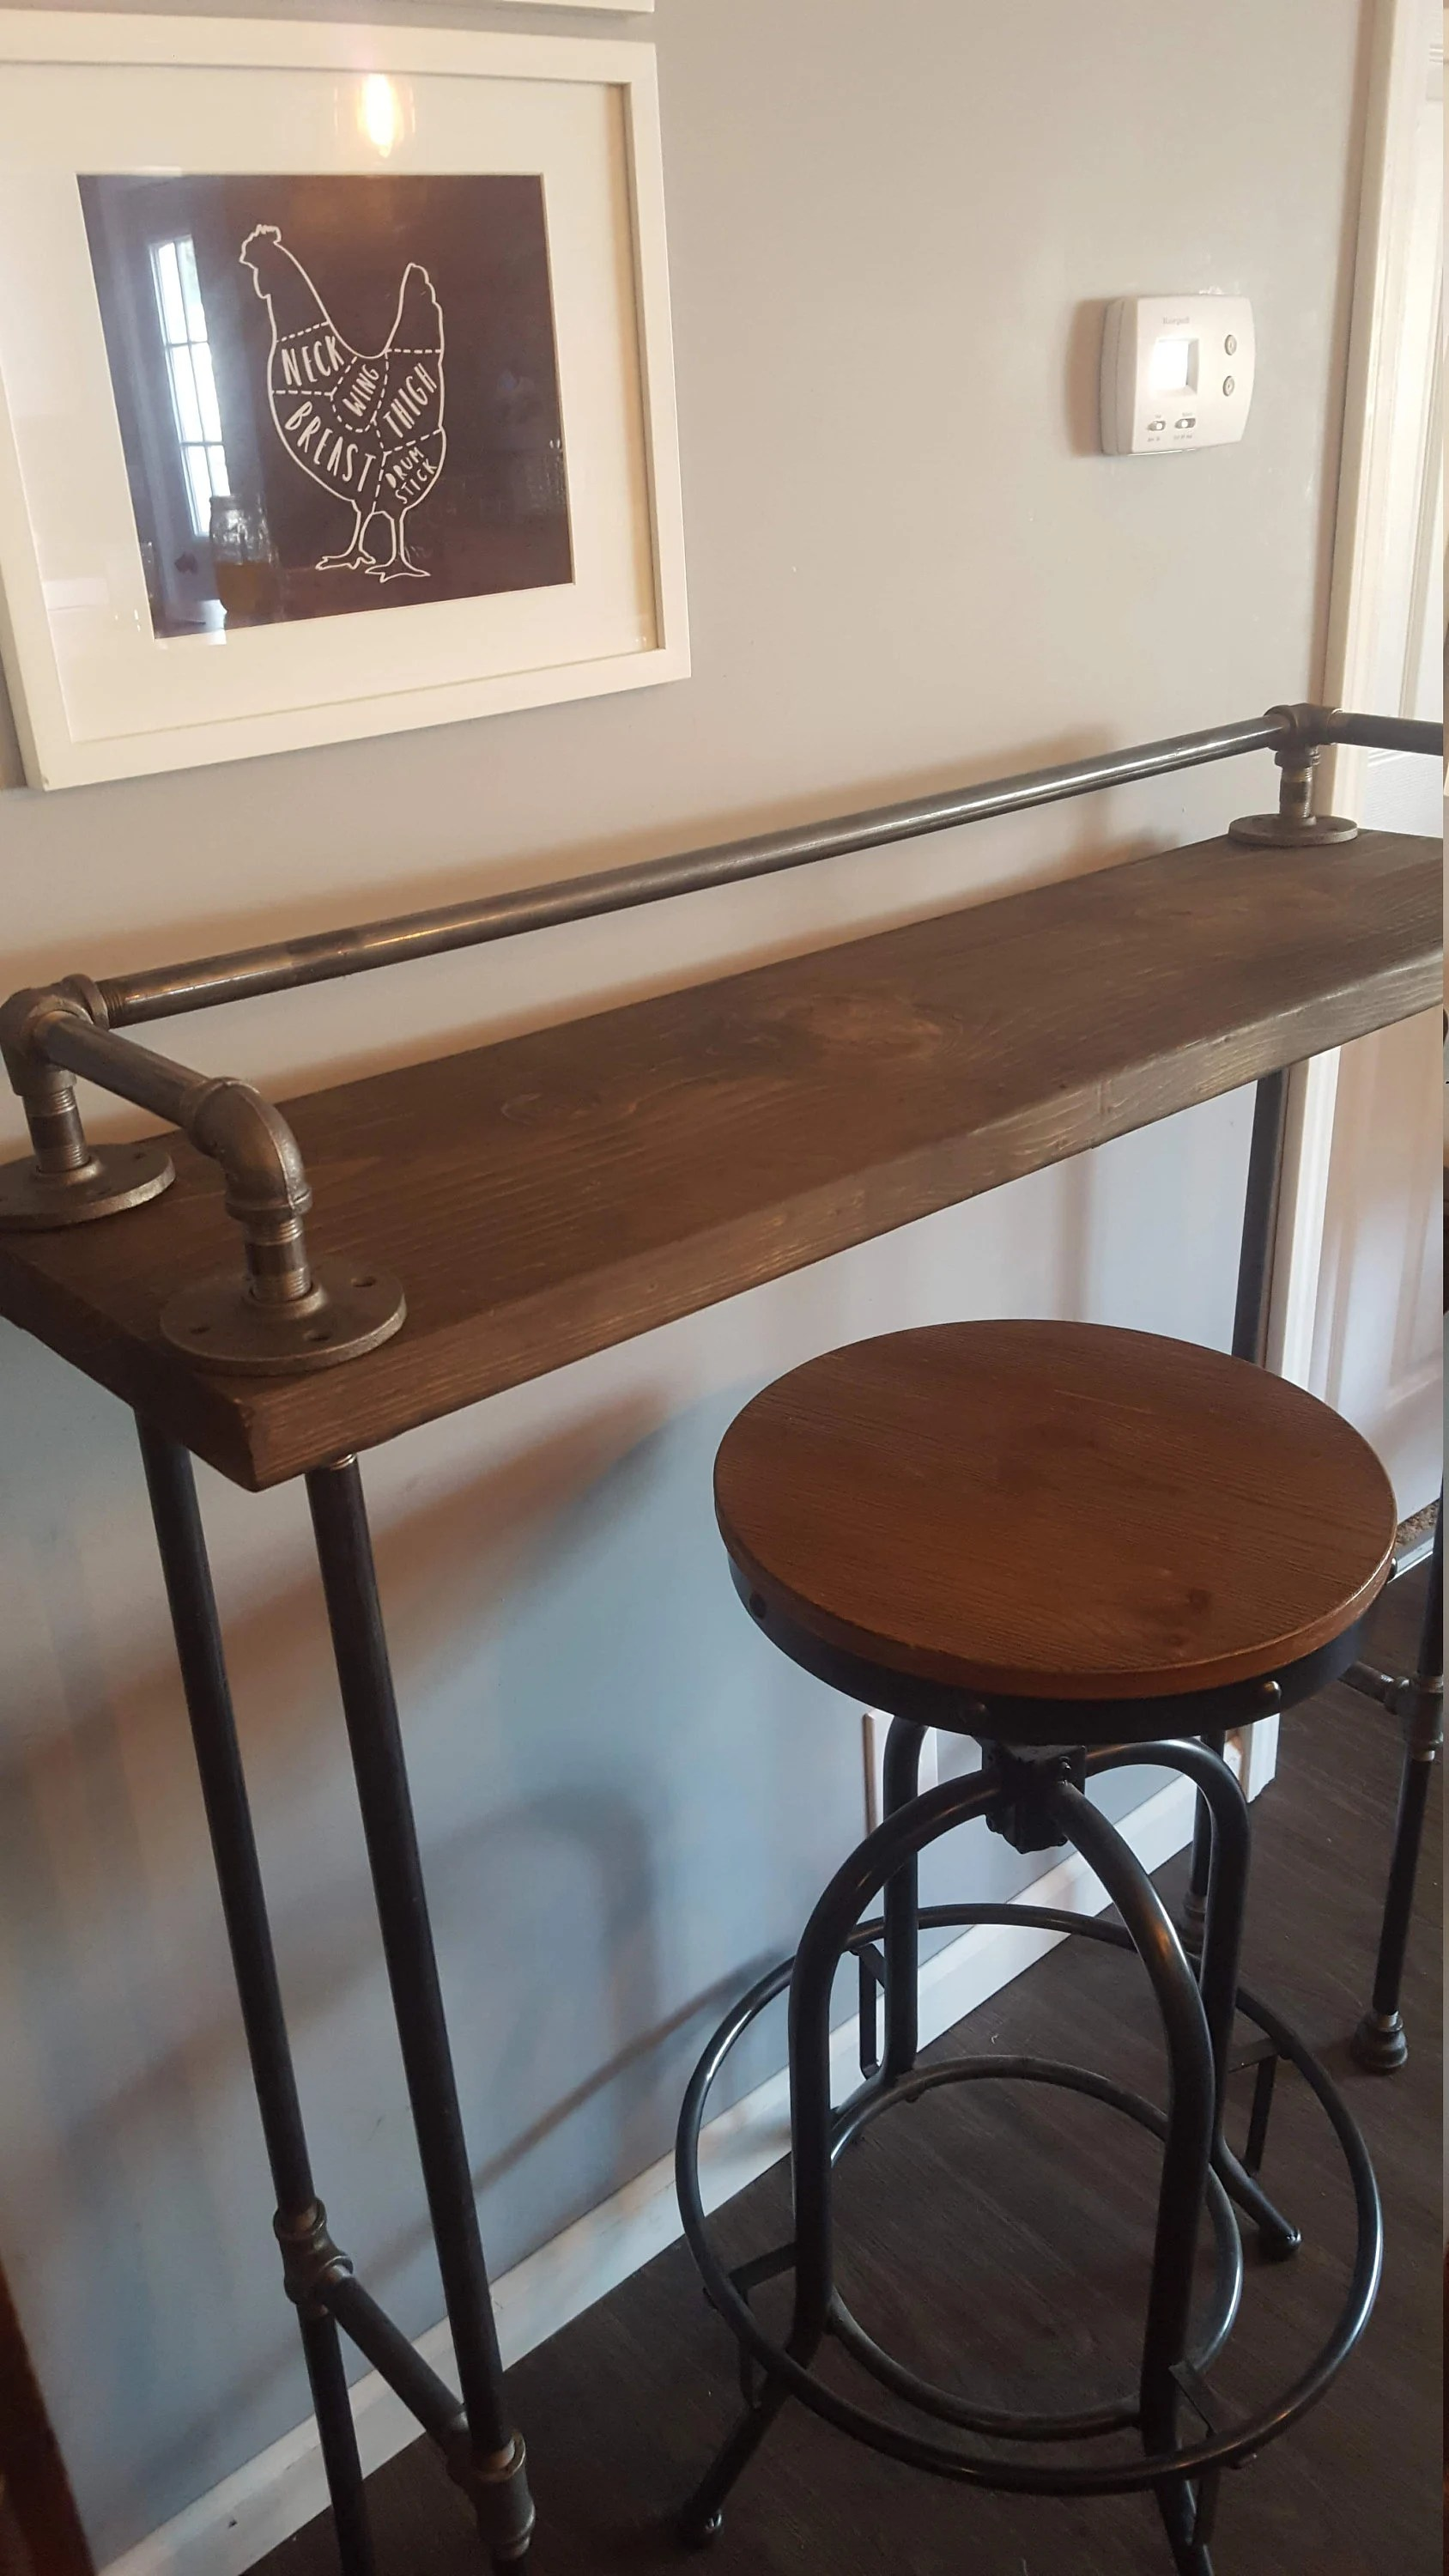 behind the sofa table how to repair small hole in leather etsy bar wood buffet reclaimed accent long entry hall couch